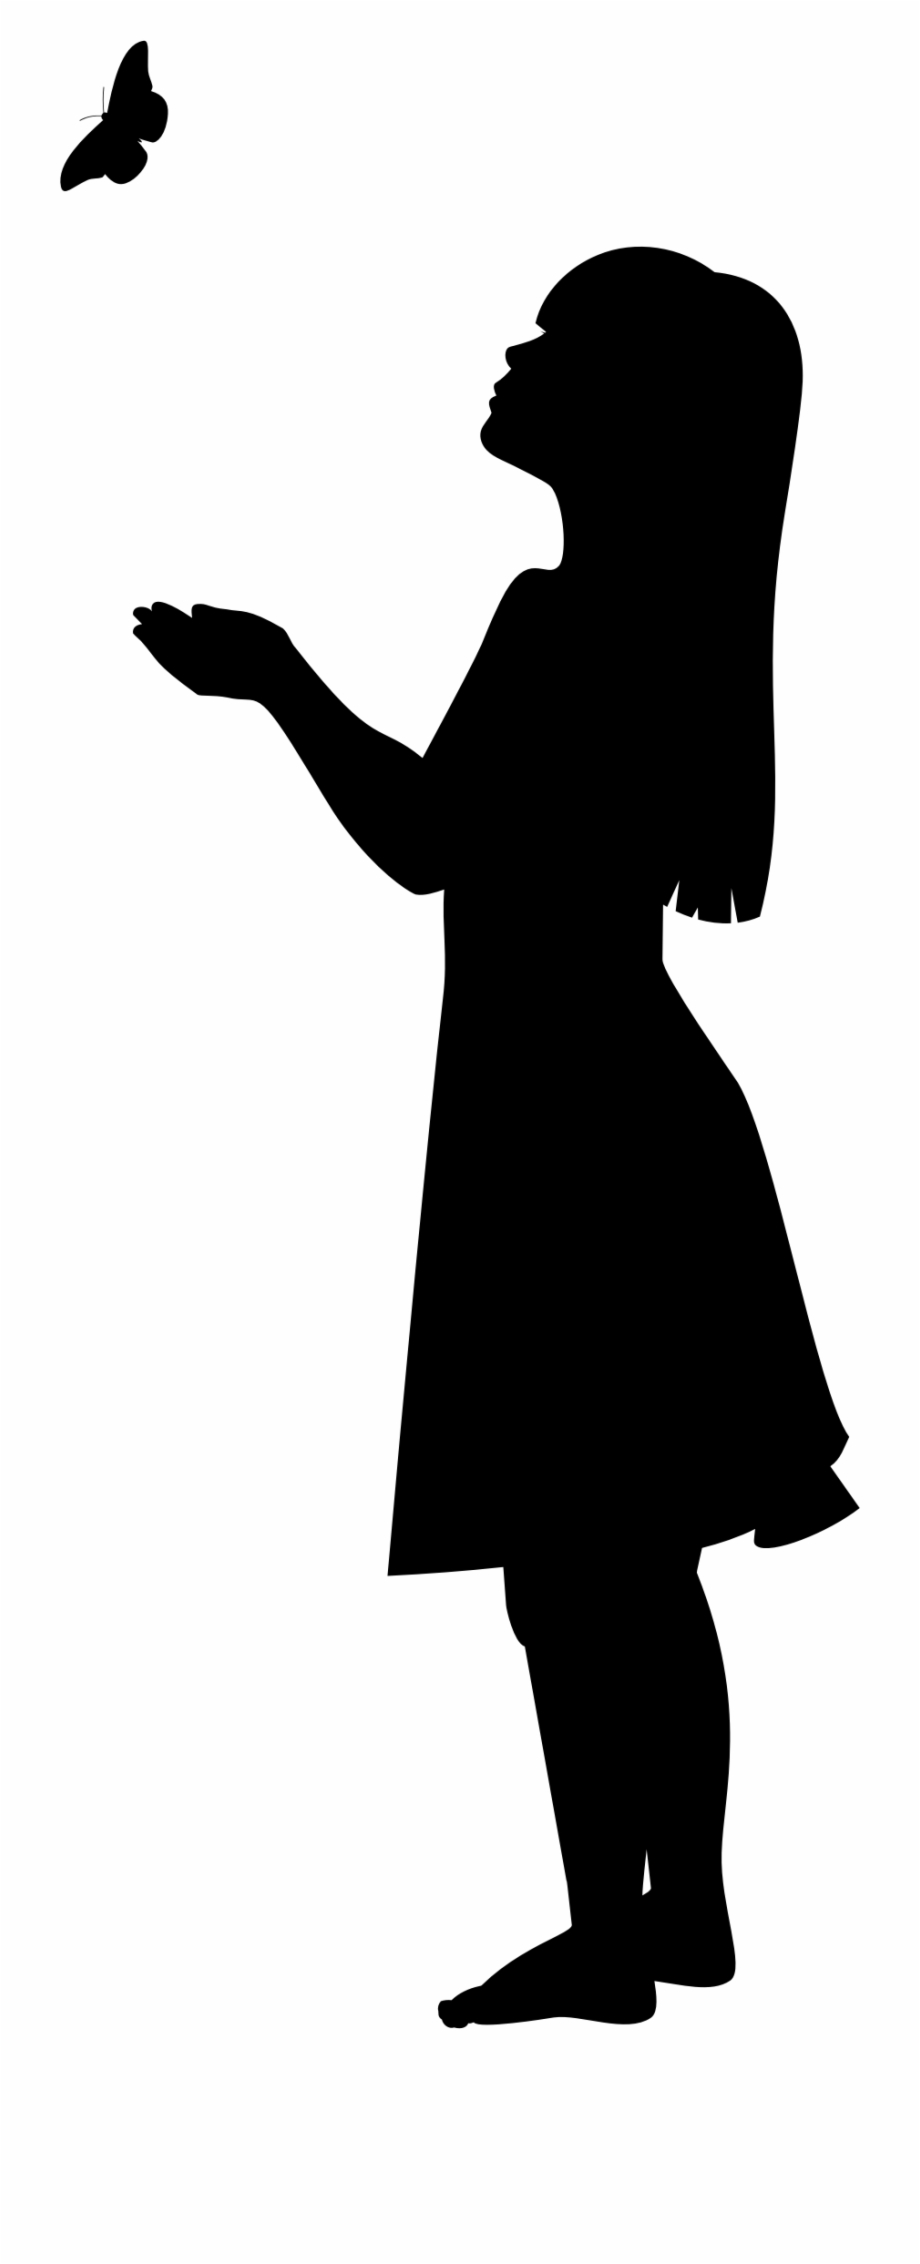 Girls silhouette clipart black and white Clipart Silhouette Of Little Girl Clipart - Little Girl Silhouette ... black and white